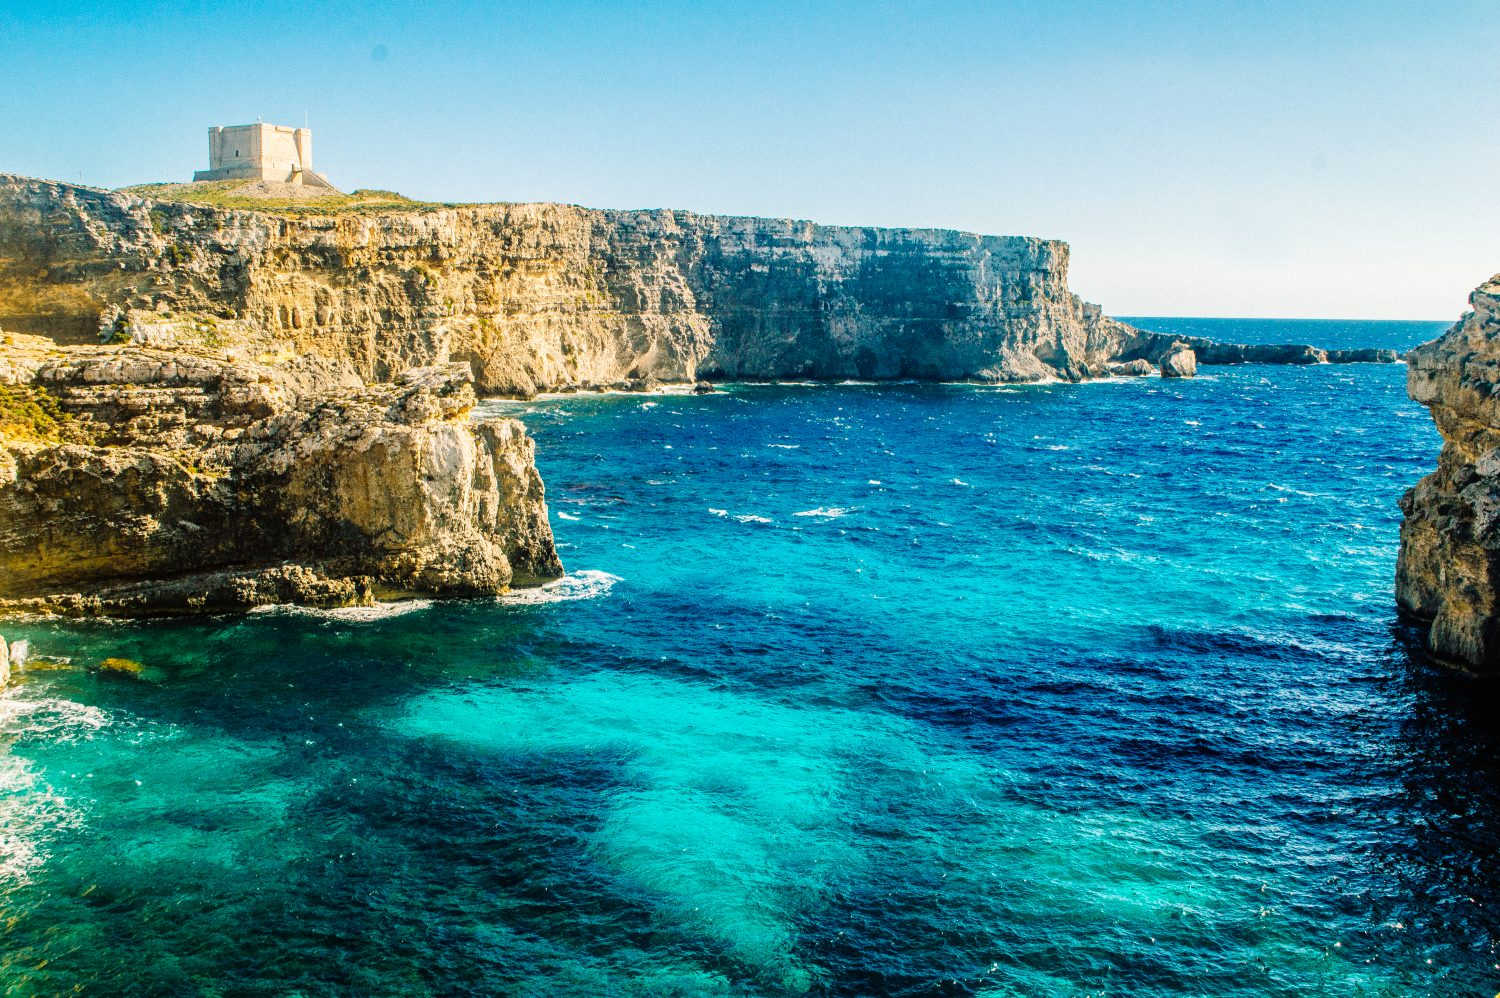 Malta travel inspiration at its finest - let these mindblowing photos show you all the amazing things to do and things to see in Malta.